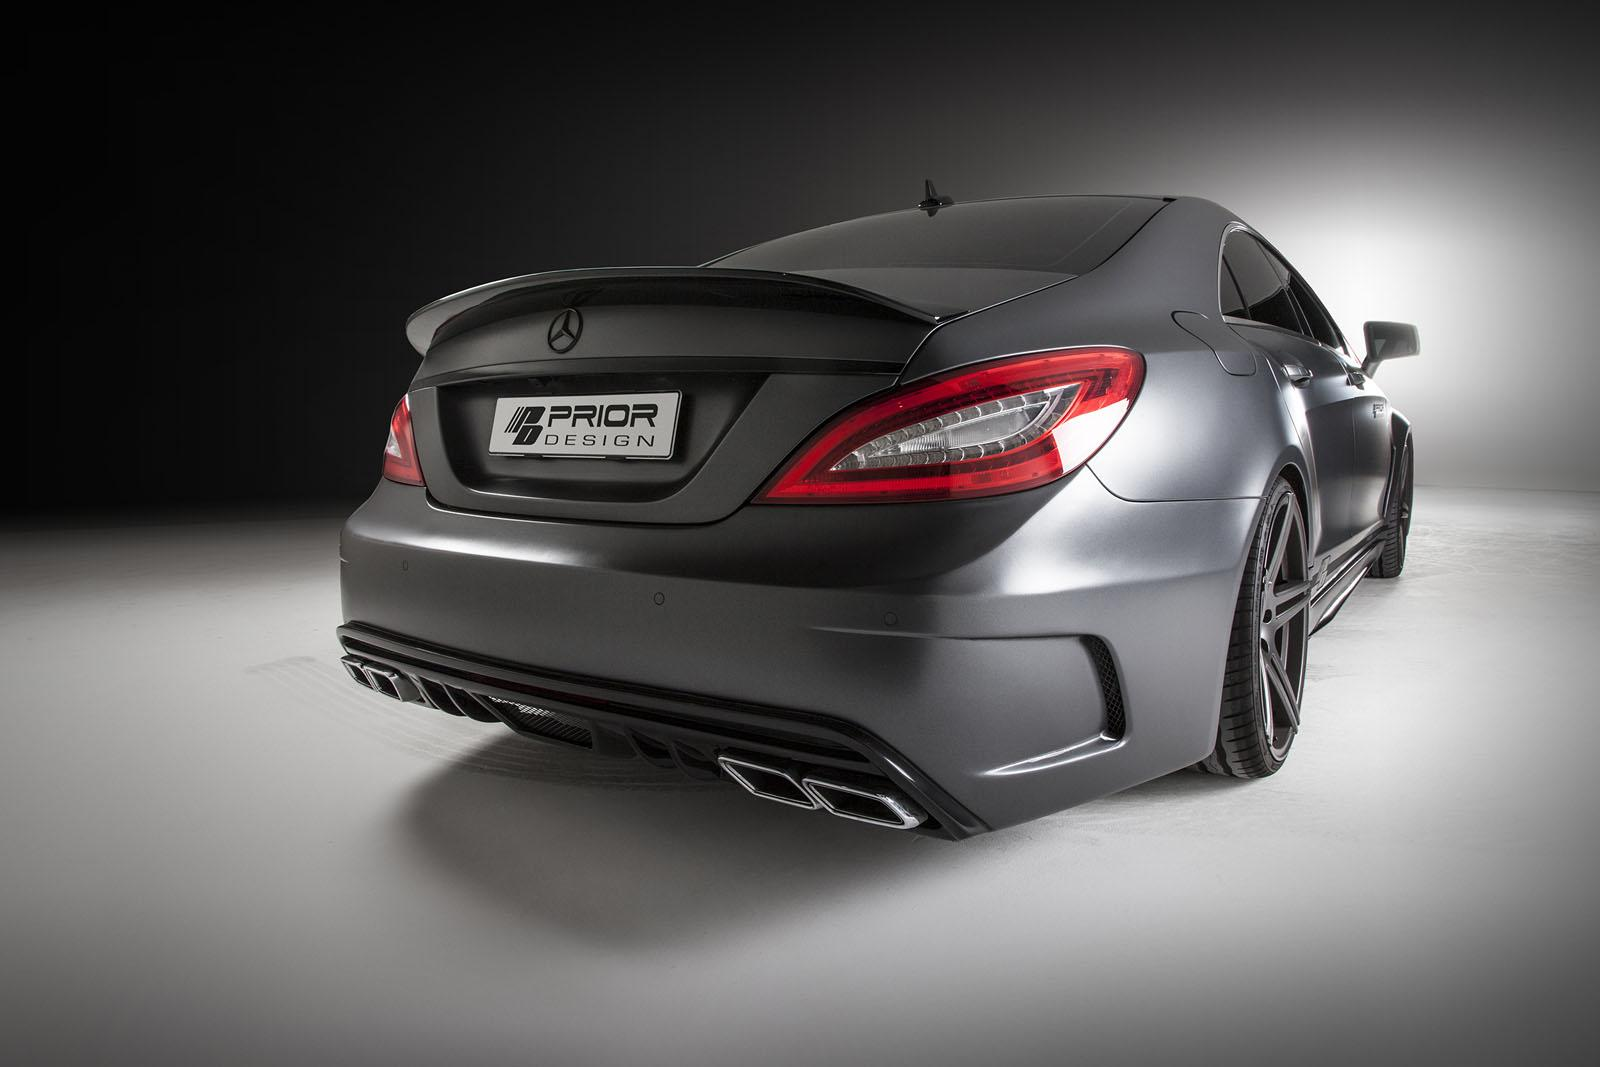 Cls C218 Gets Prior Design Pd550 Black Edition Body Kit